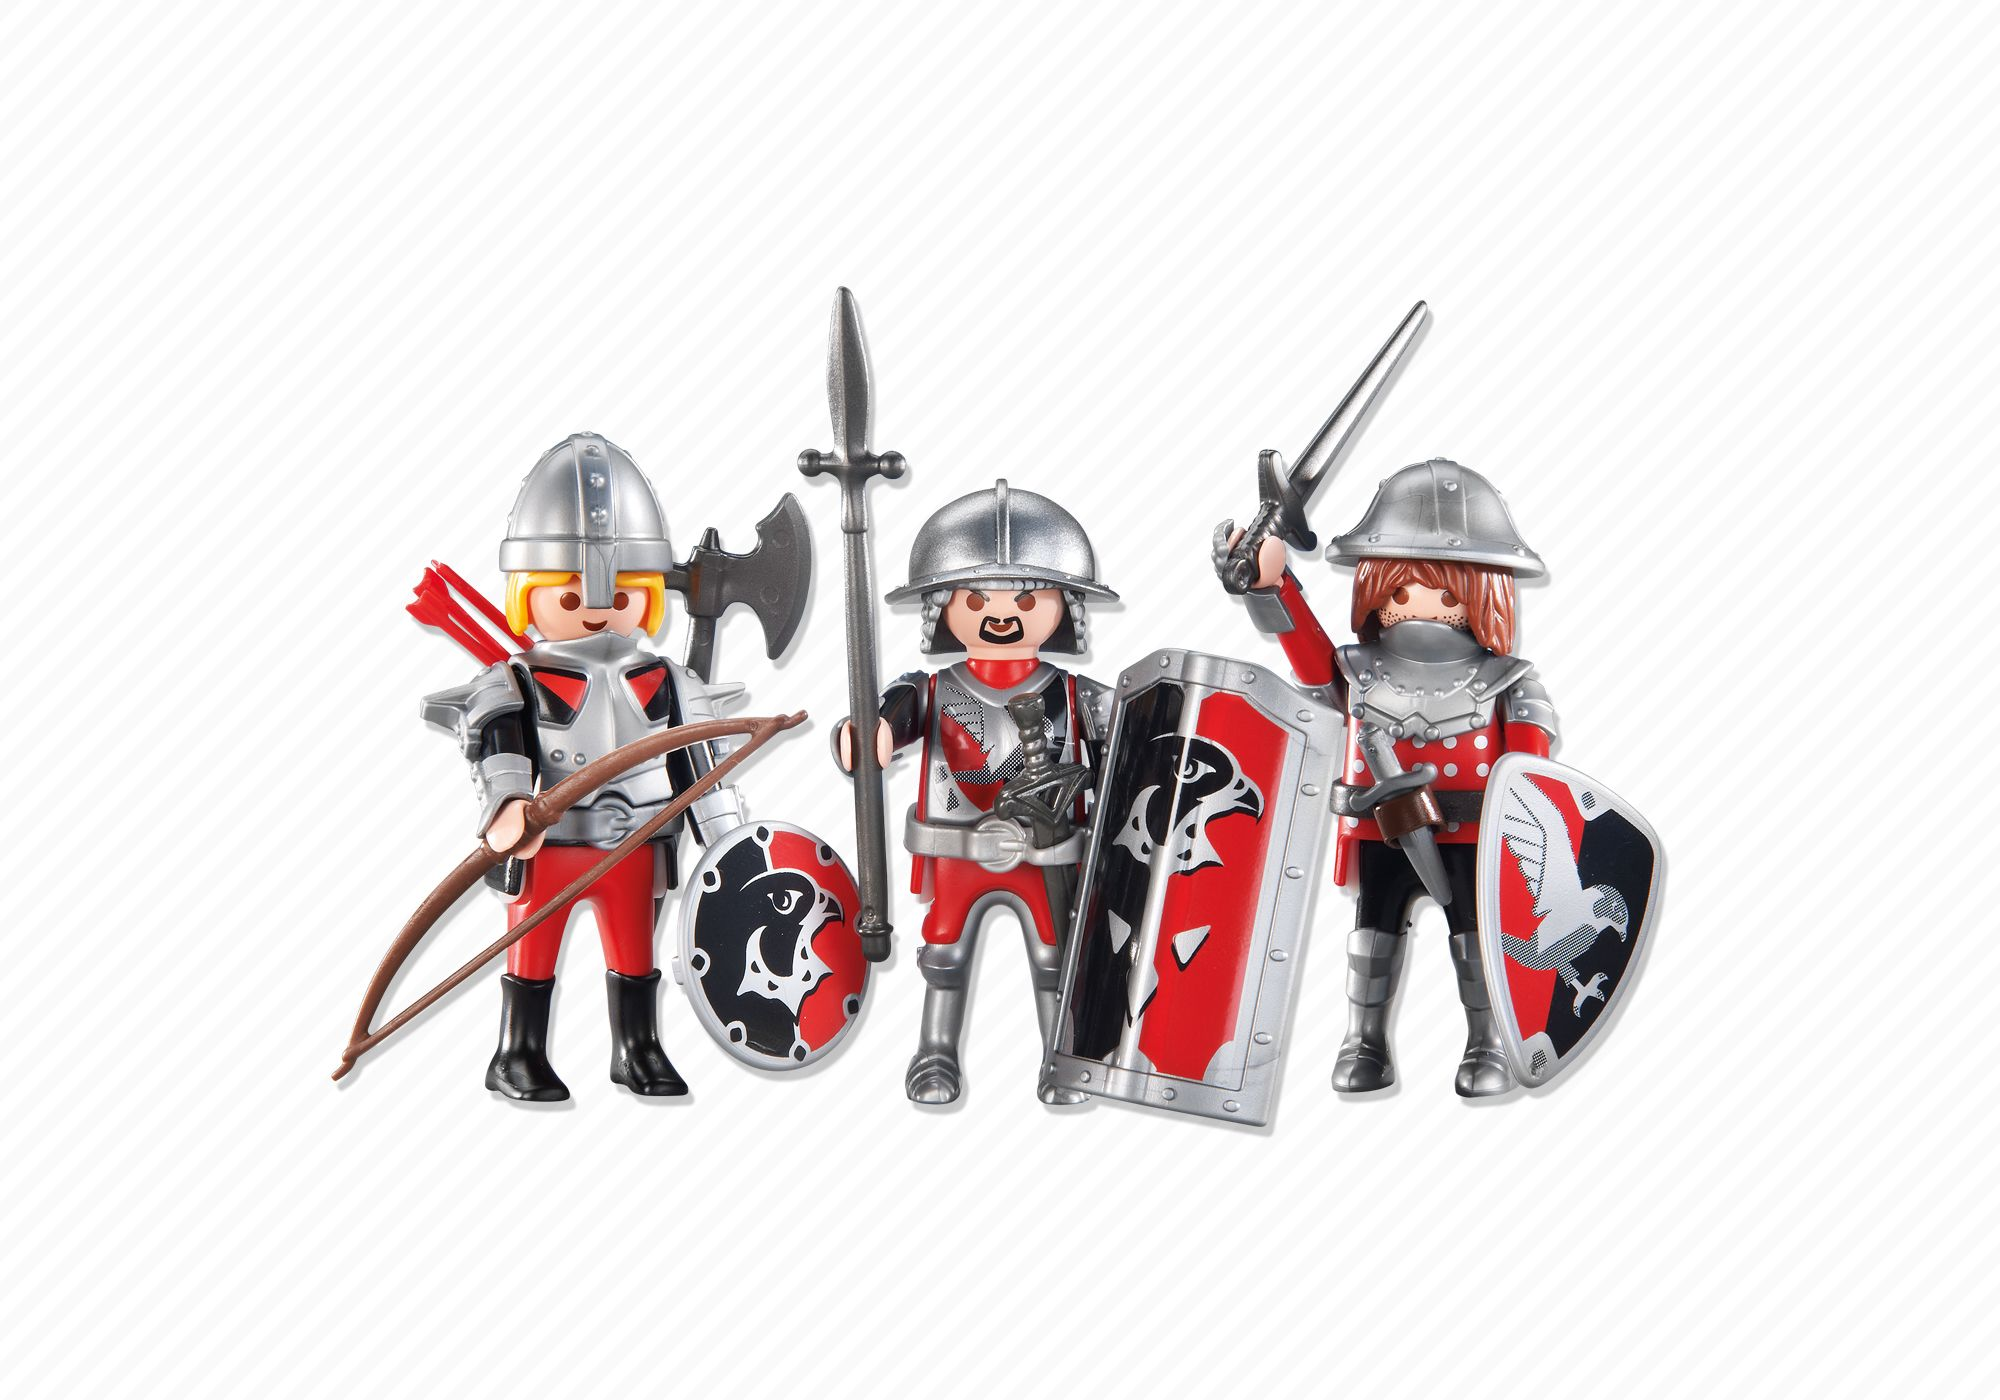 Playmobil set 6381 3 knights klickypedia for Playmobil caballeros